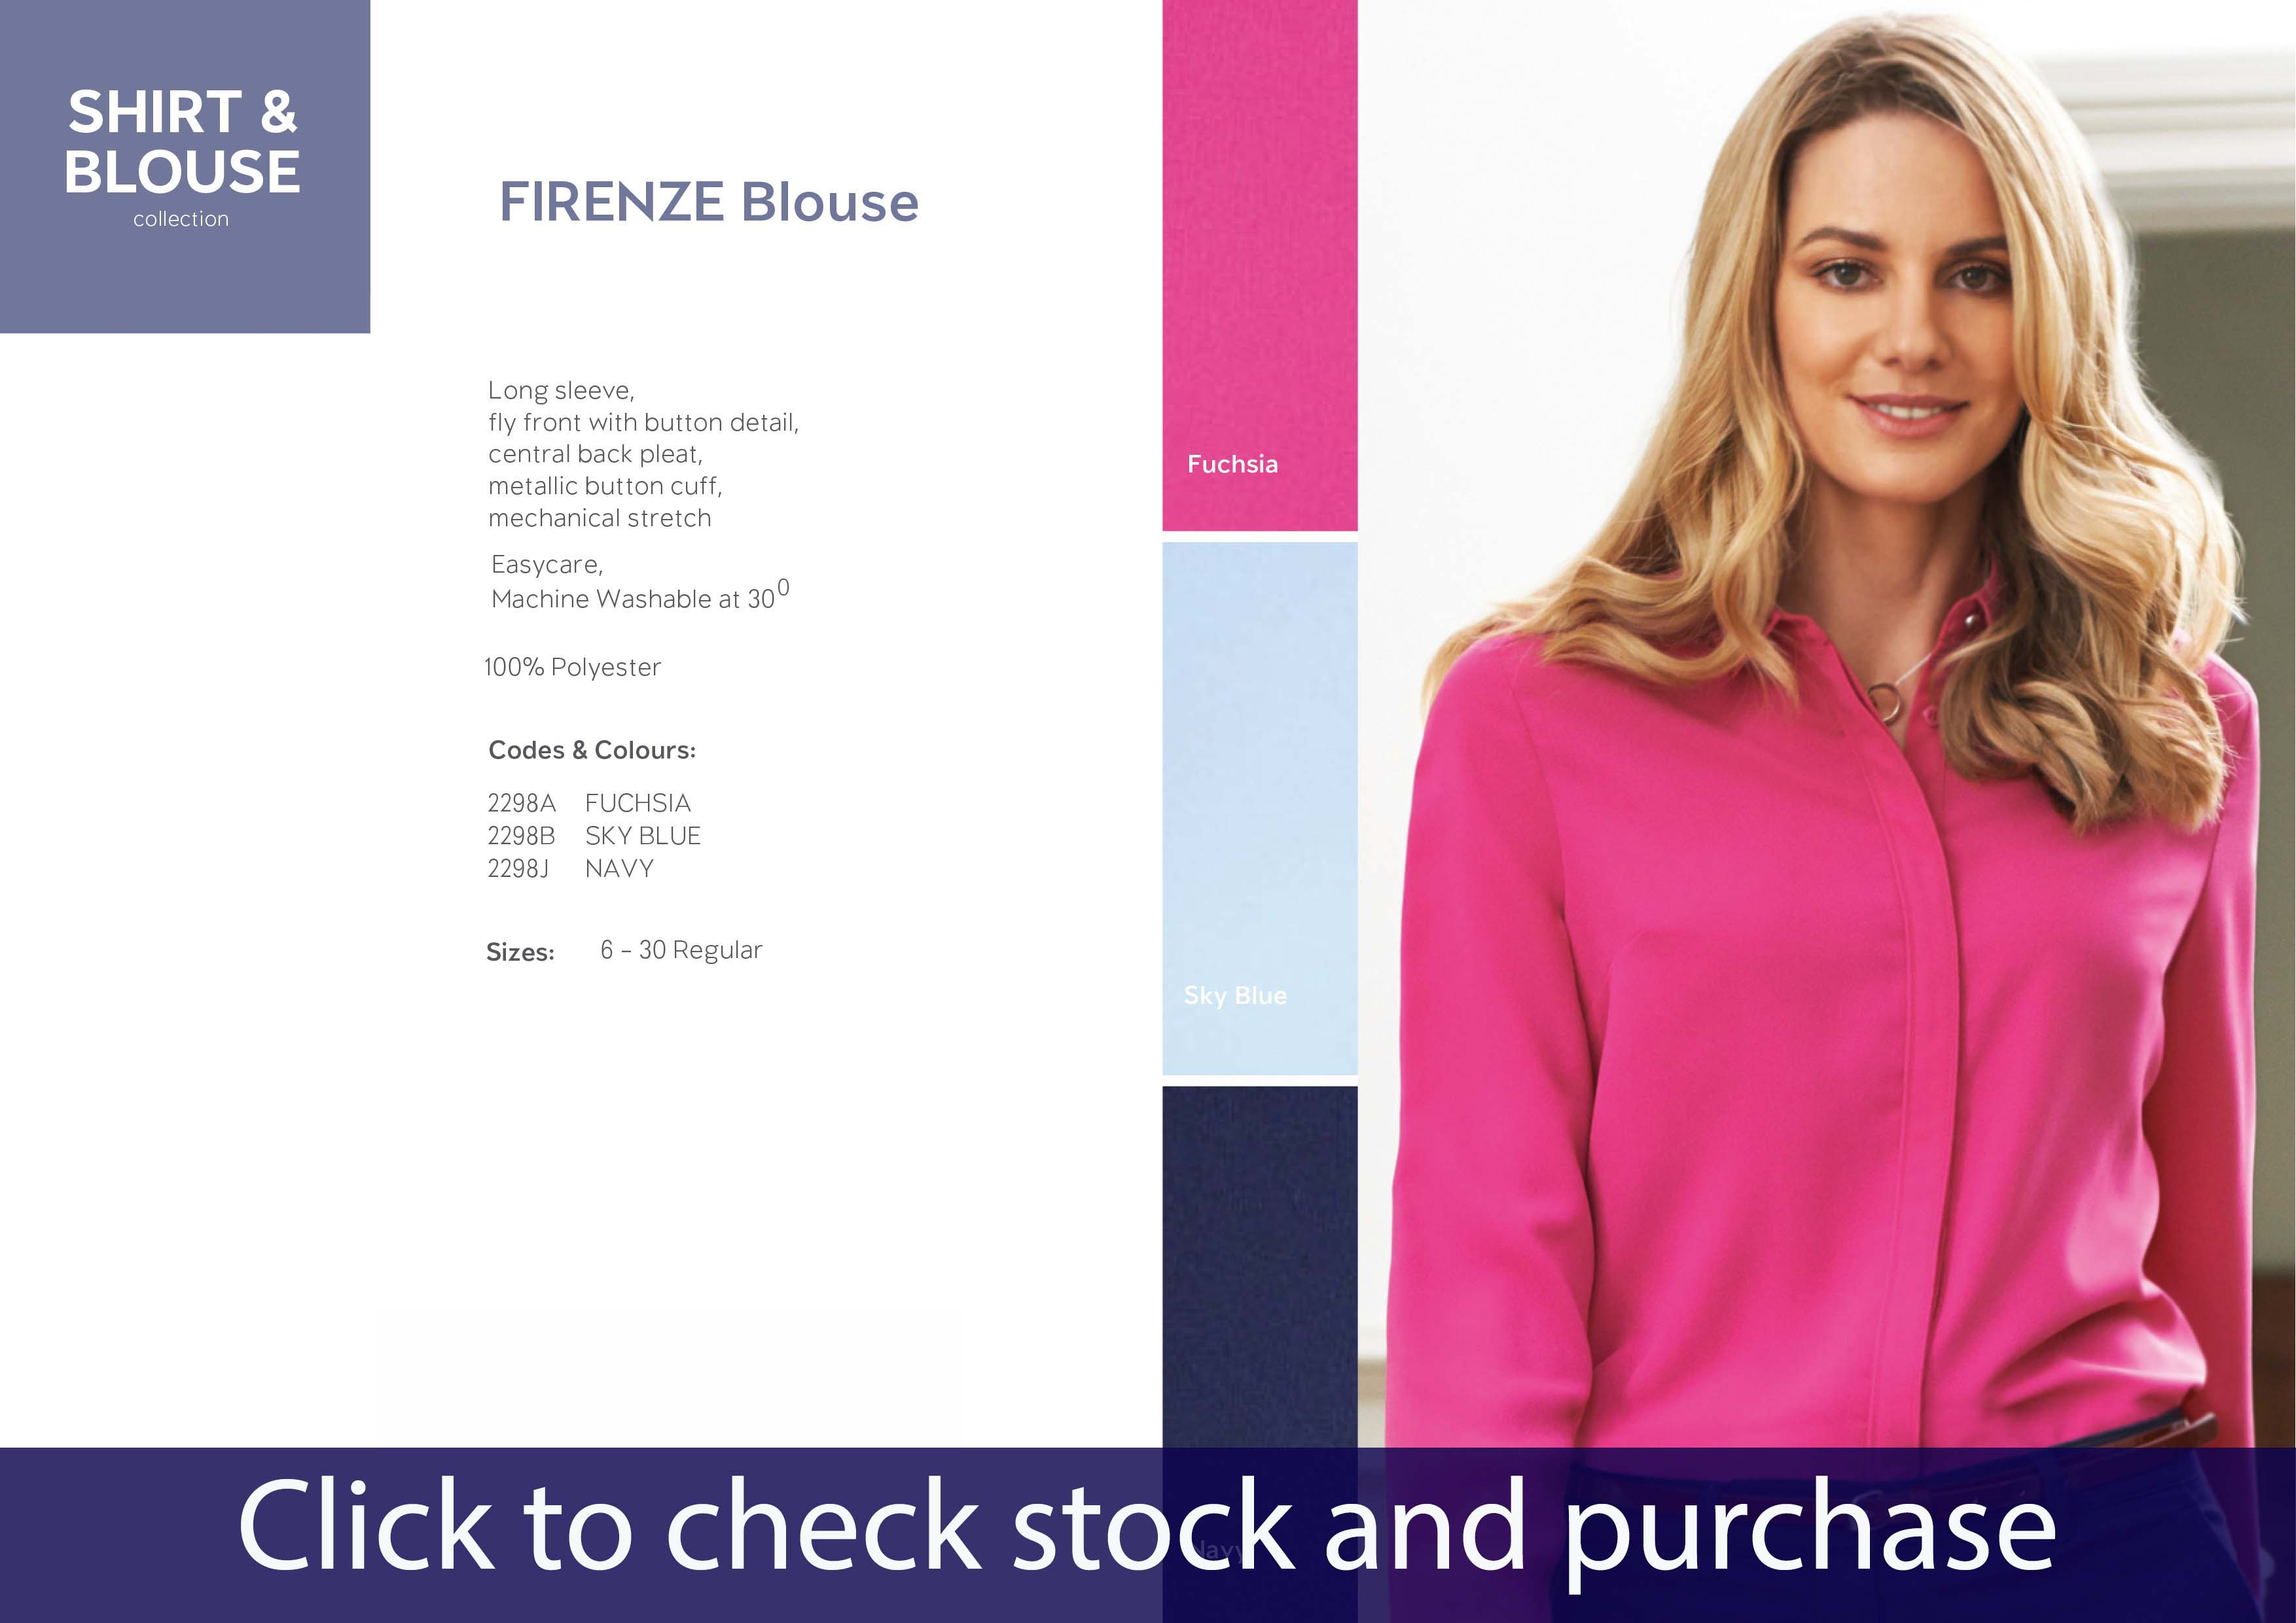 BROOK TAVERNER FIRENZE BLOUSE 2298